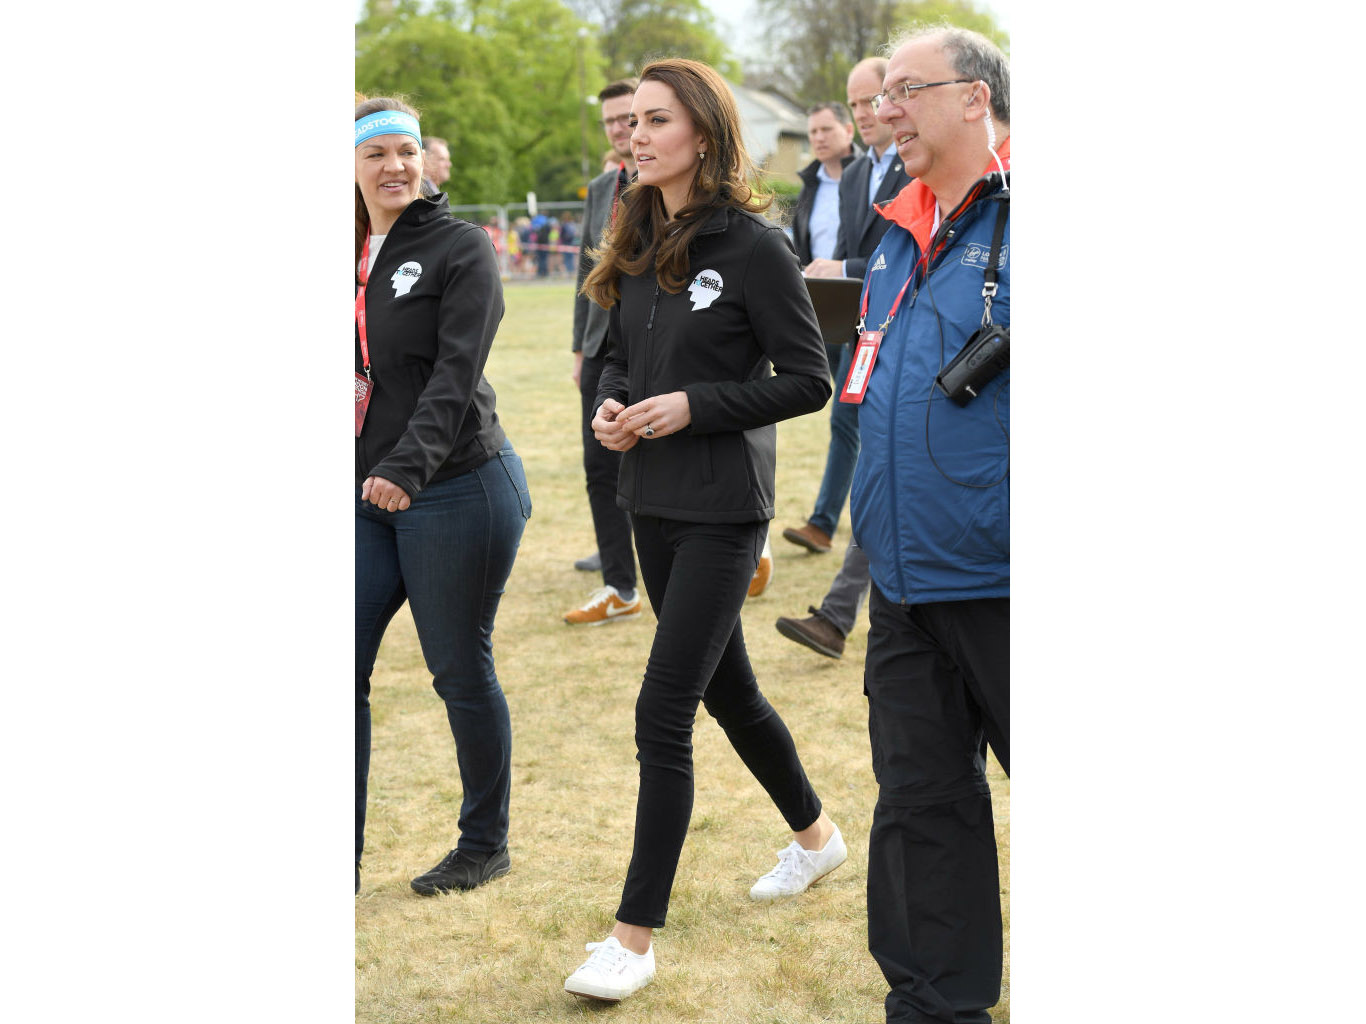 LONDON, ENGLAND - APRIL 23:  Catherine, Duchess of Cambridge meets Heads Together runners in the Blue Start area as they prepare for the 2017 Virgin Money London Marathon on April 23, 2017 in London, England.  (Photo by Karwai Tang/WireImage)